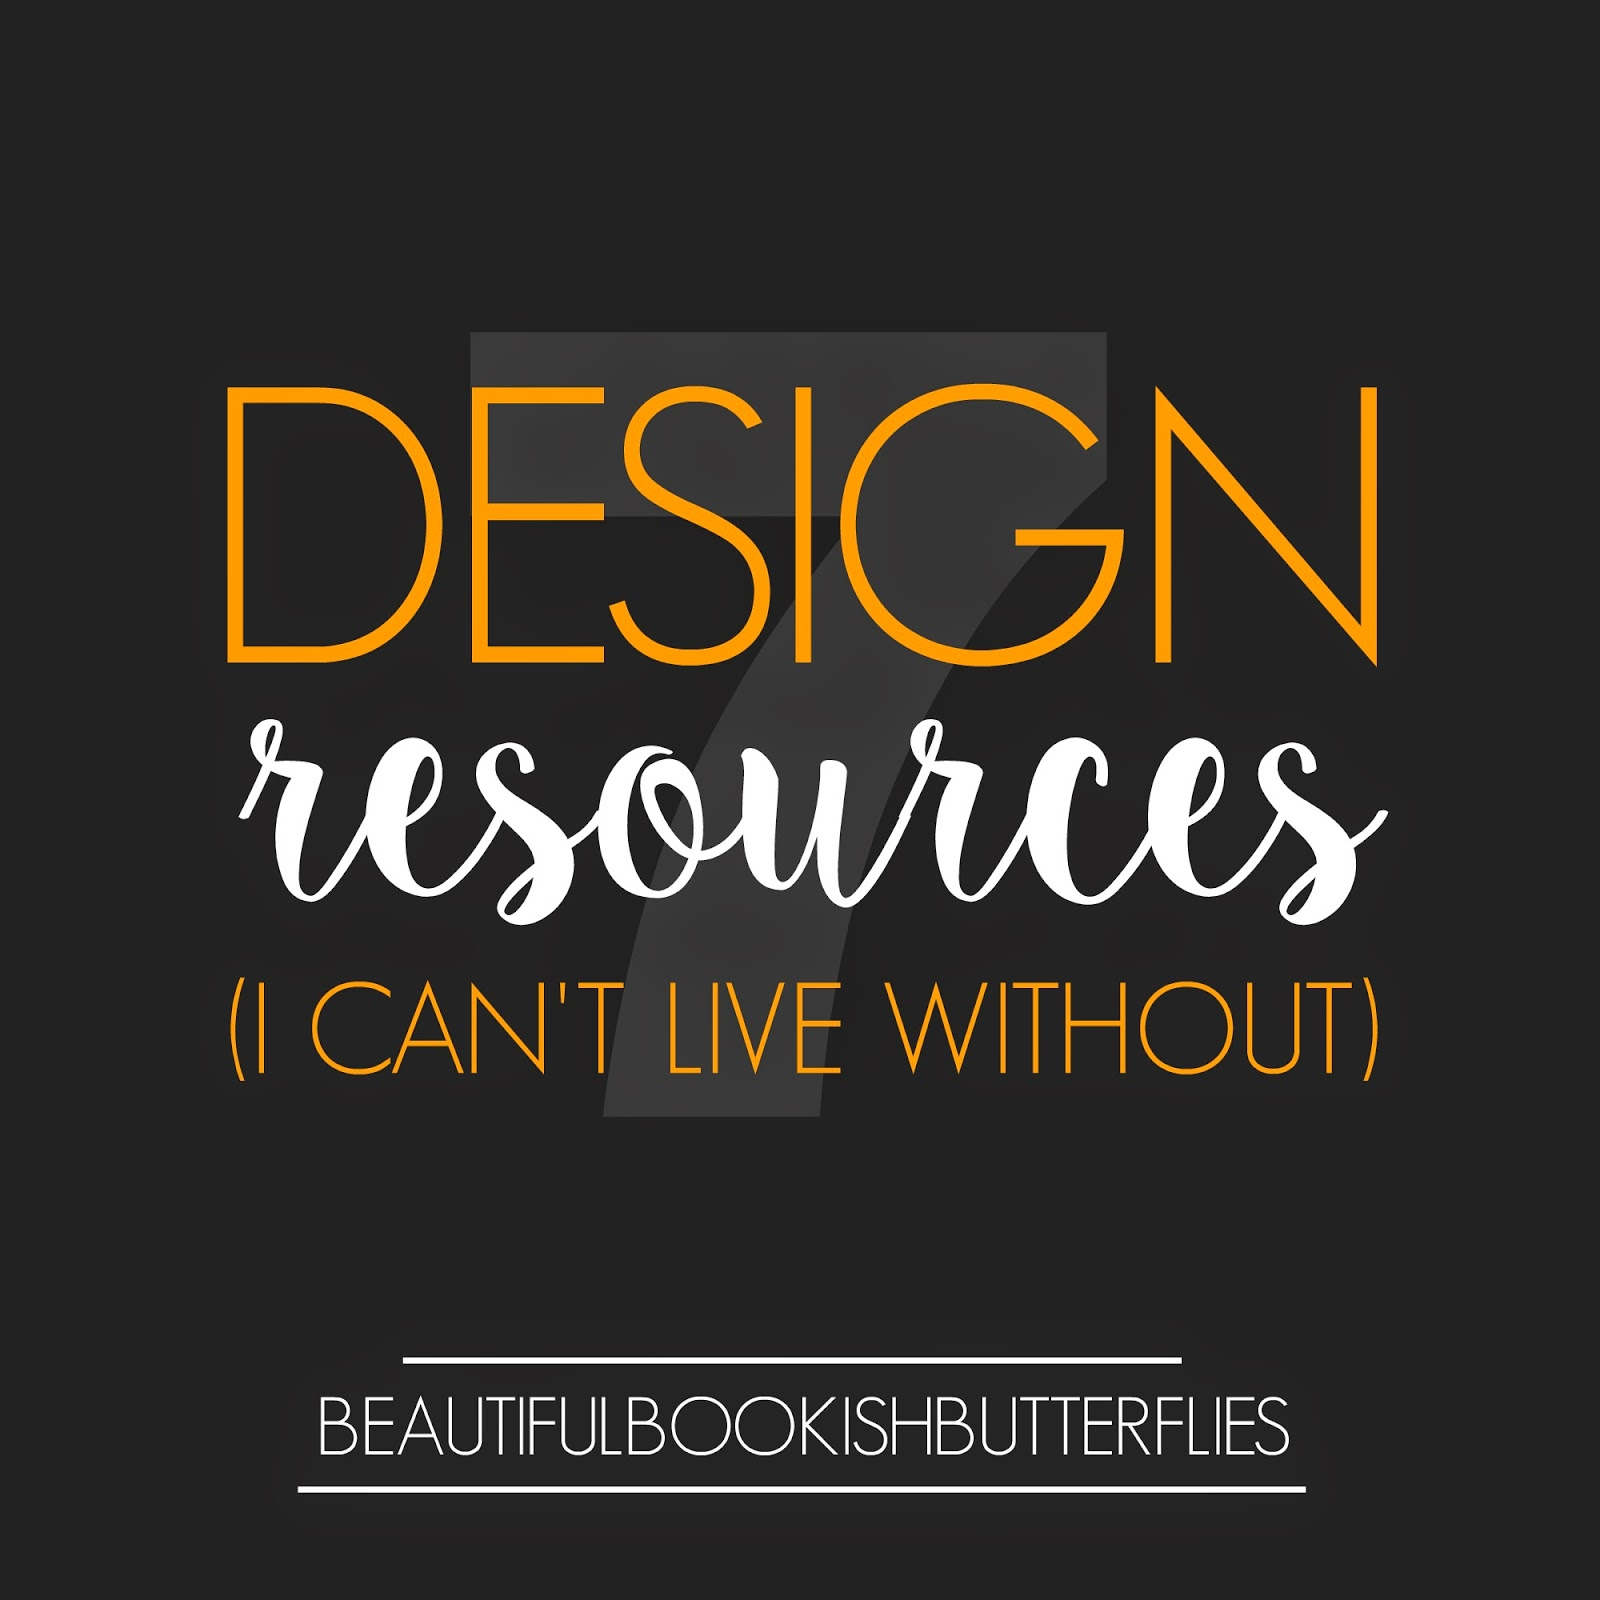 Design-Resources-Must-Use